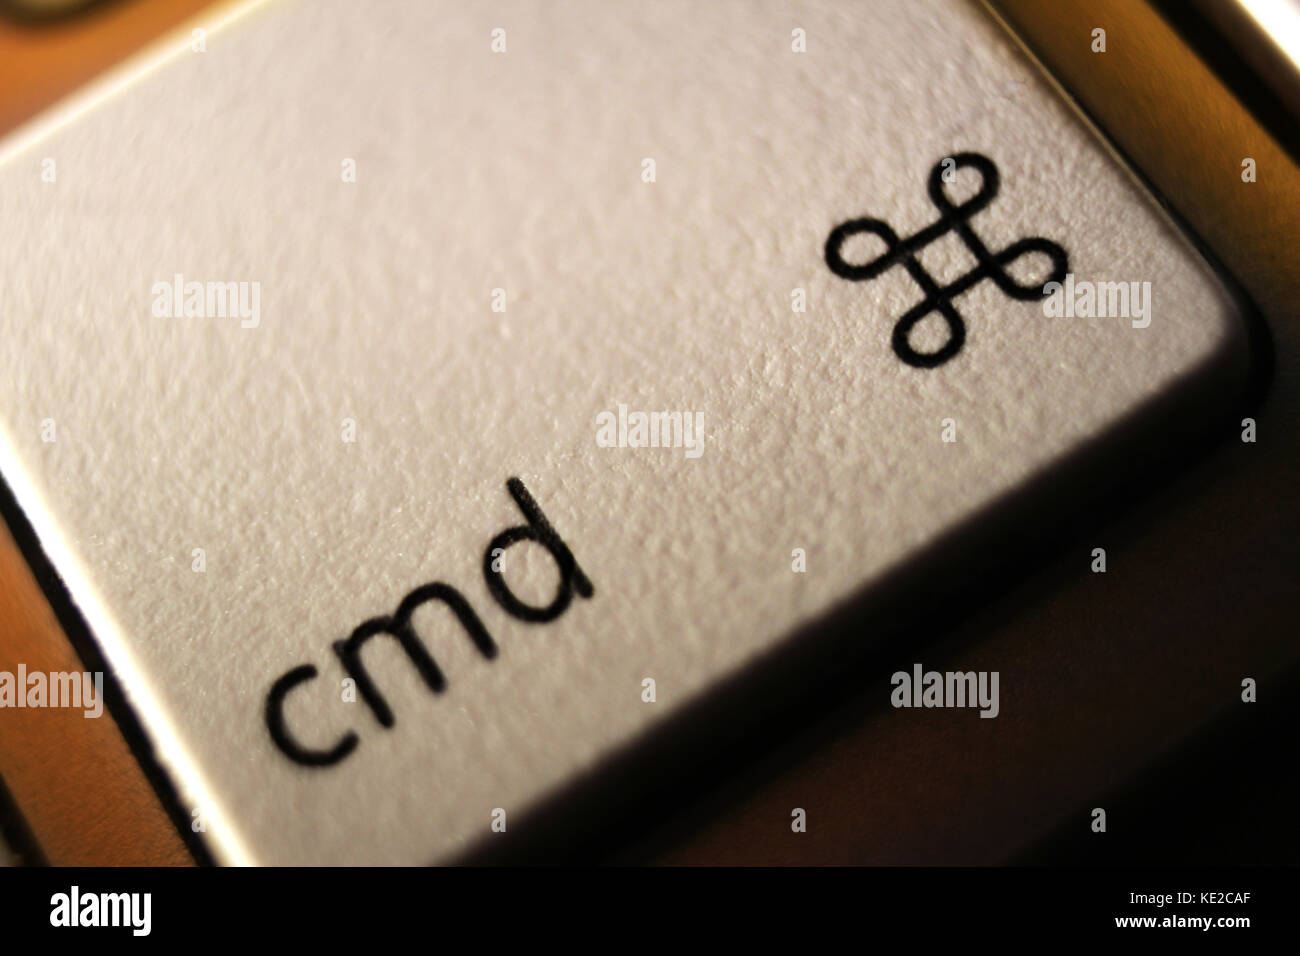 Command key (⌘) on an apple computer keyboard Stock Photo